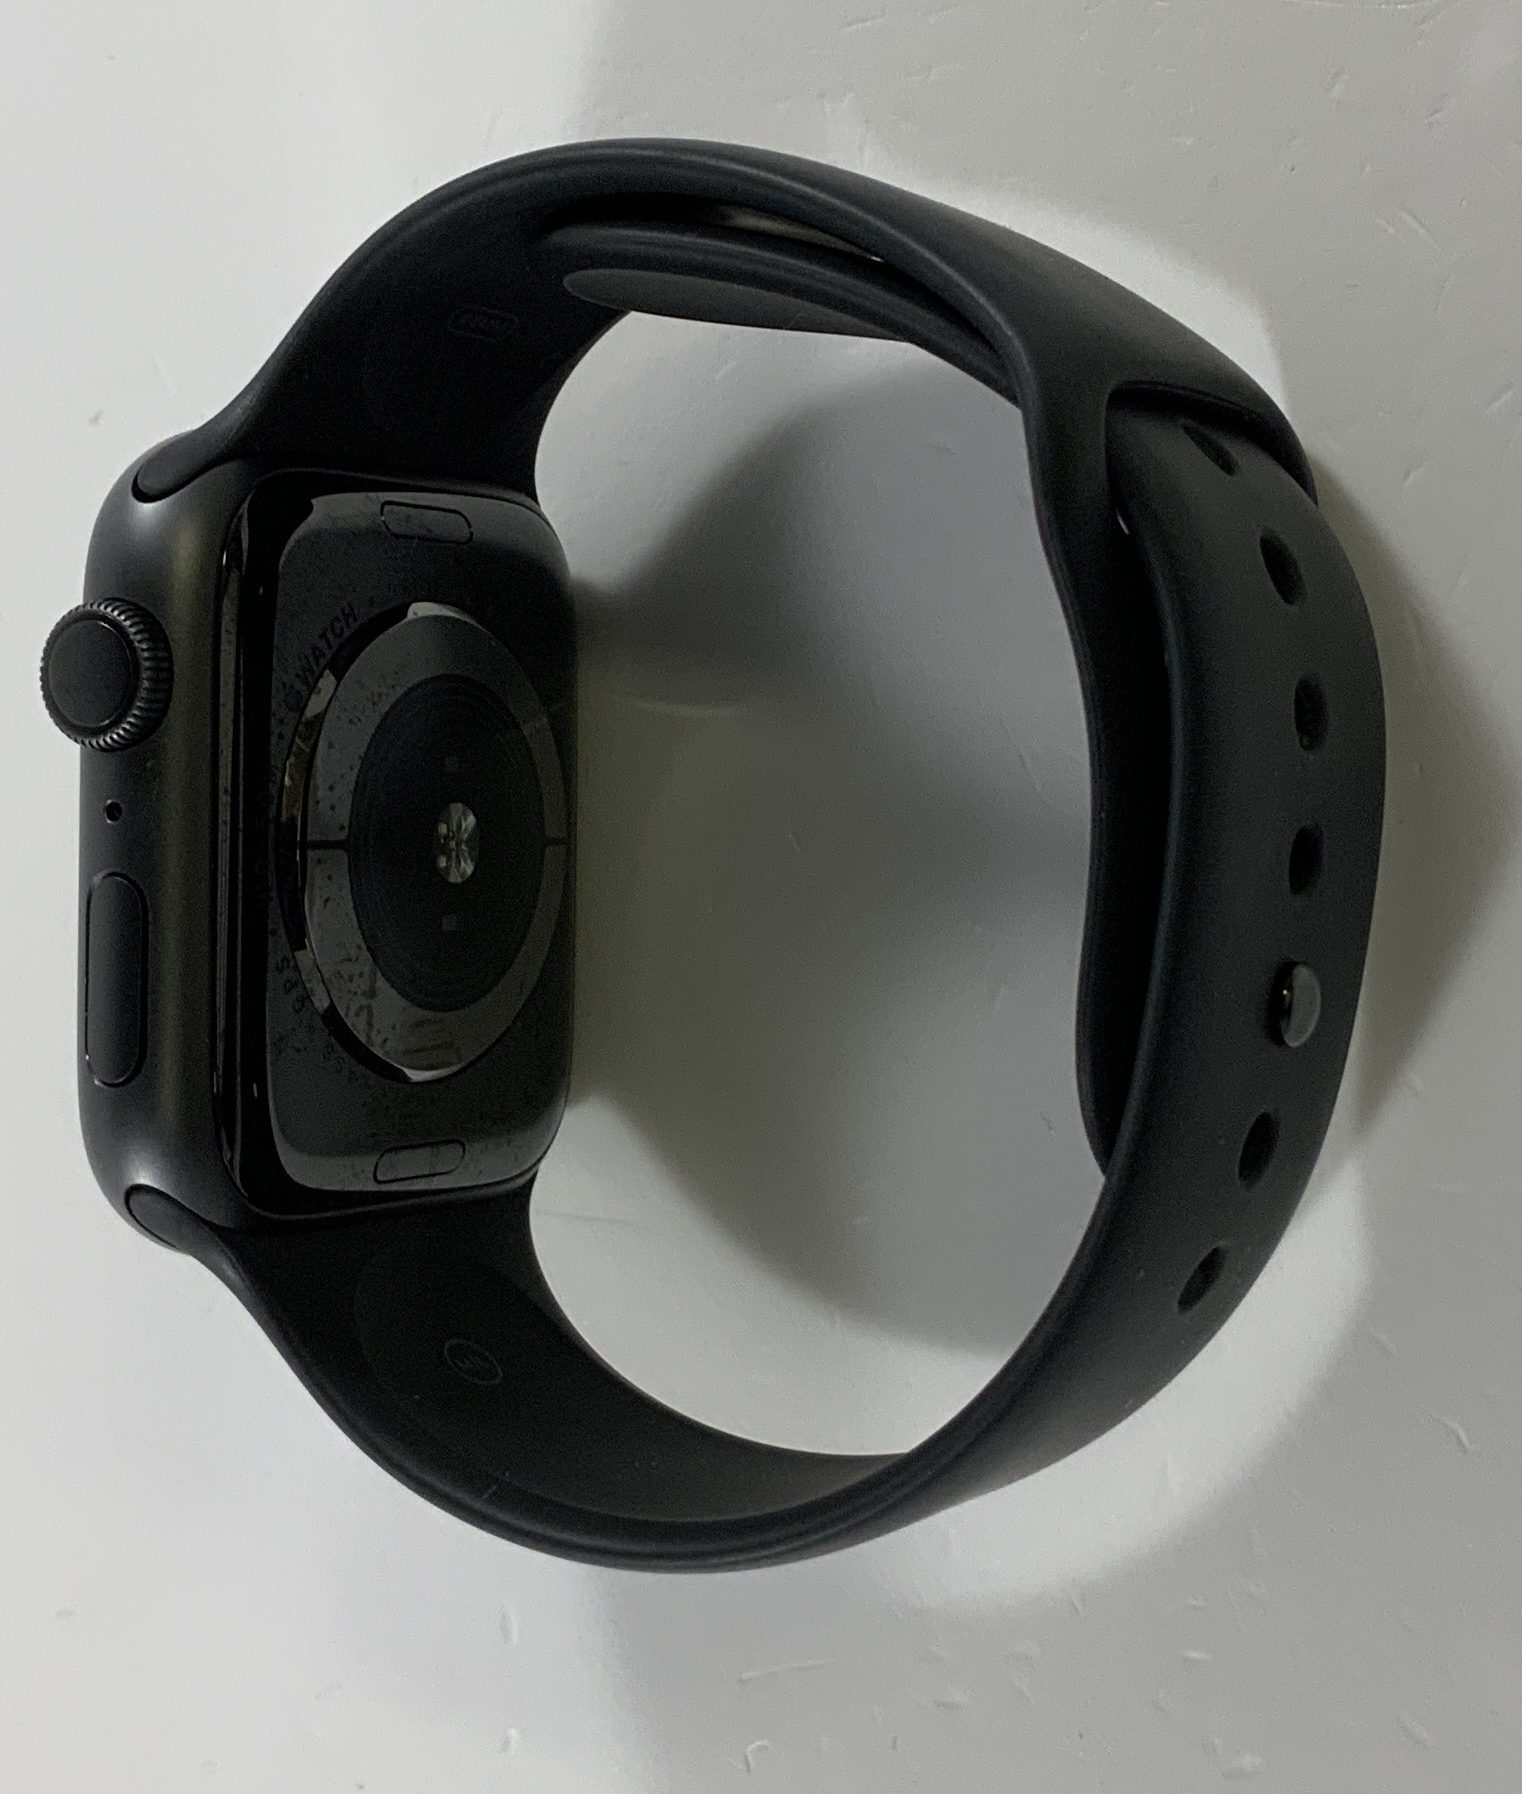 Watch Series 4 Aluminum (44mm), Space Gray, Black Sport Band, Afbeelding 2